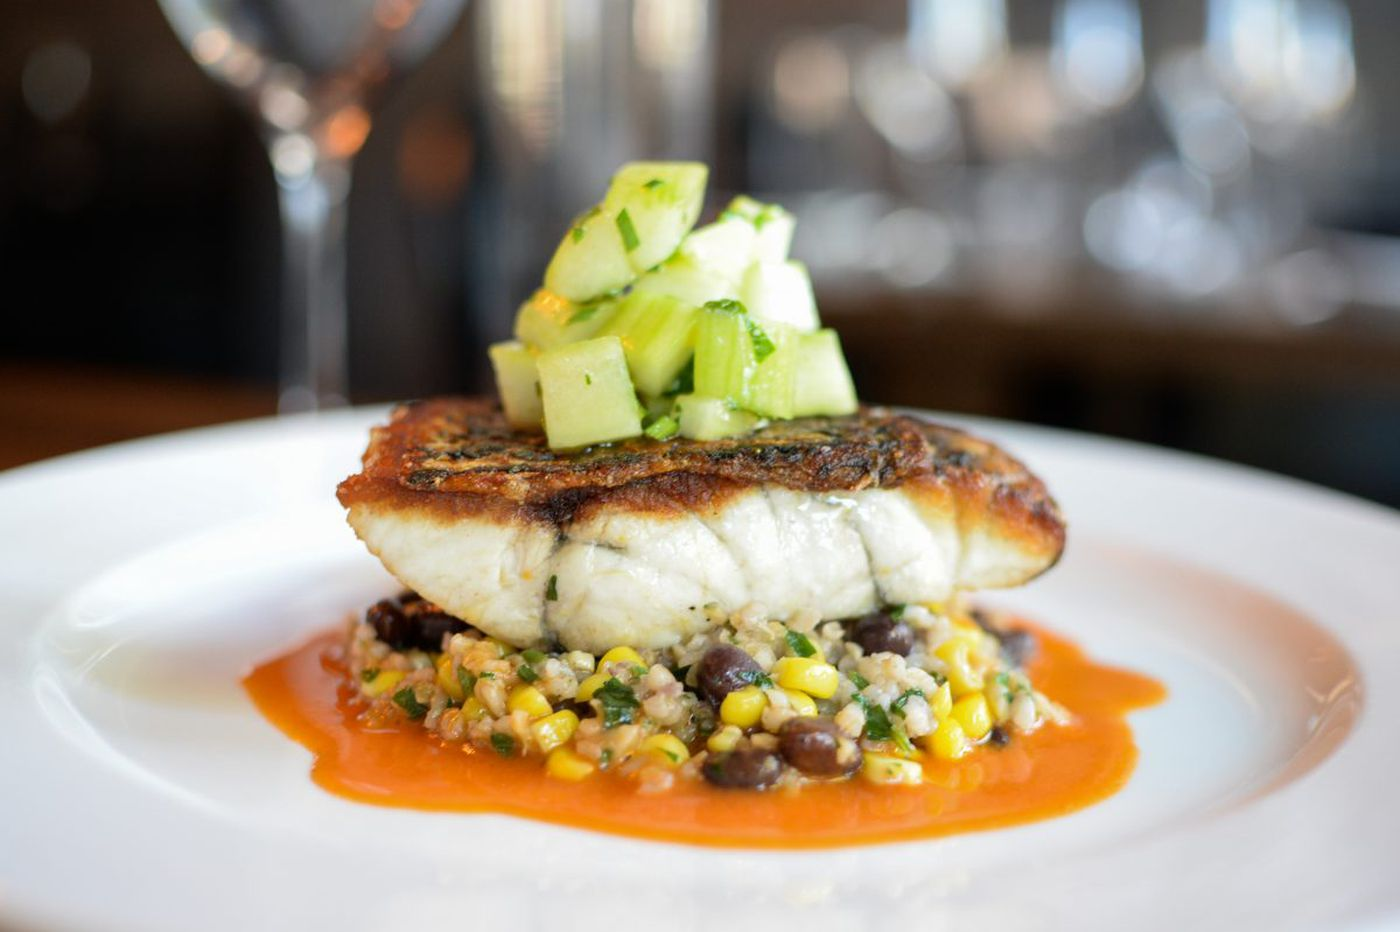 Barramundi is starring on menus in Philly. Is it the next big fish?